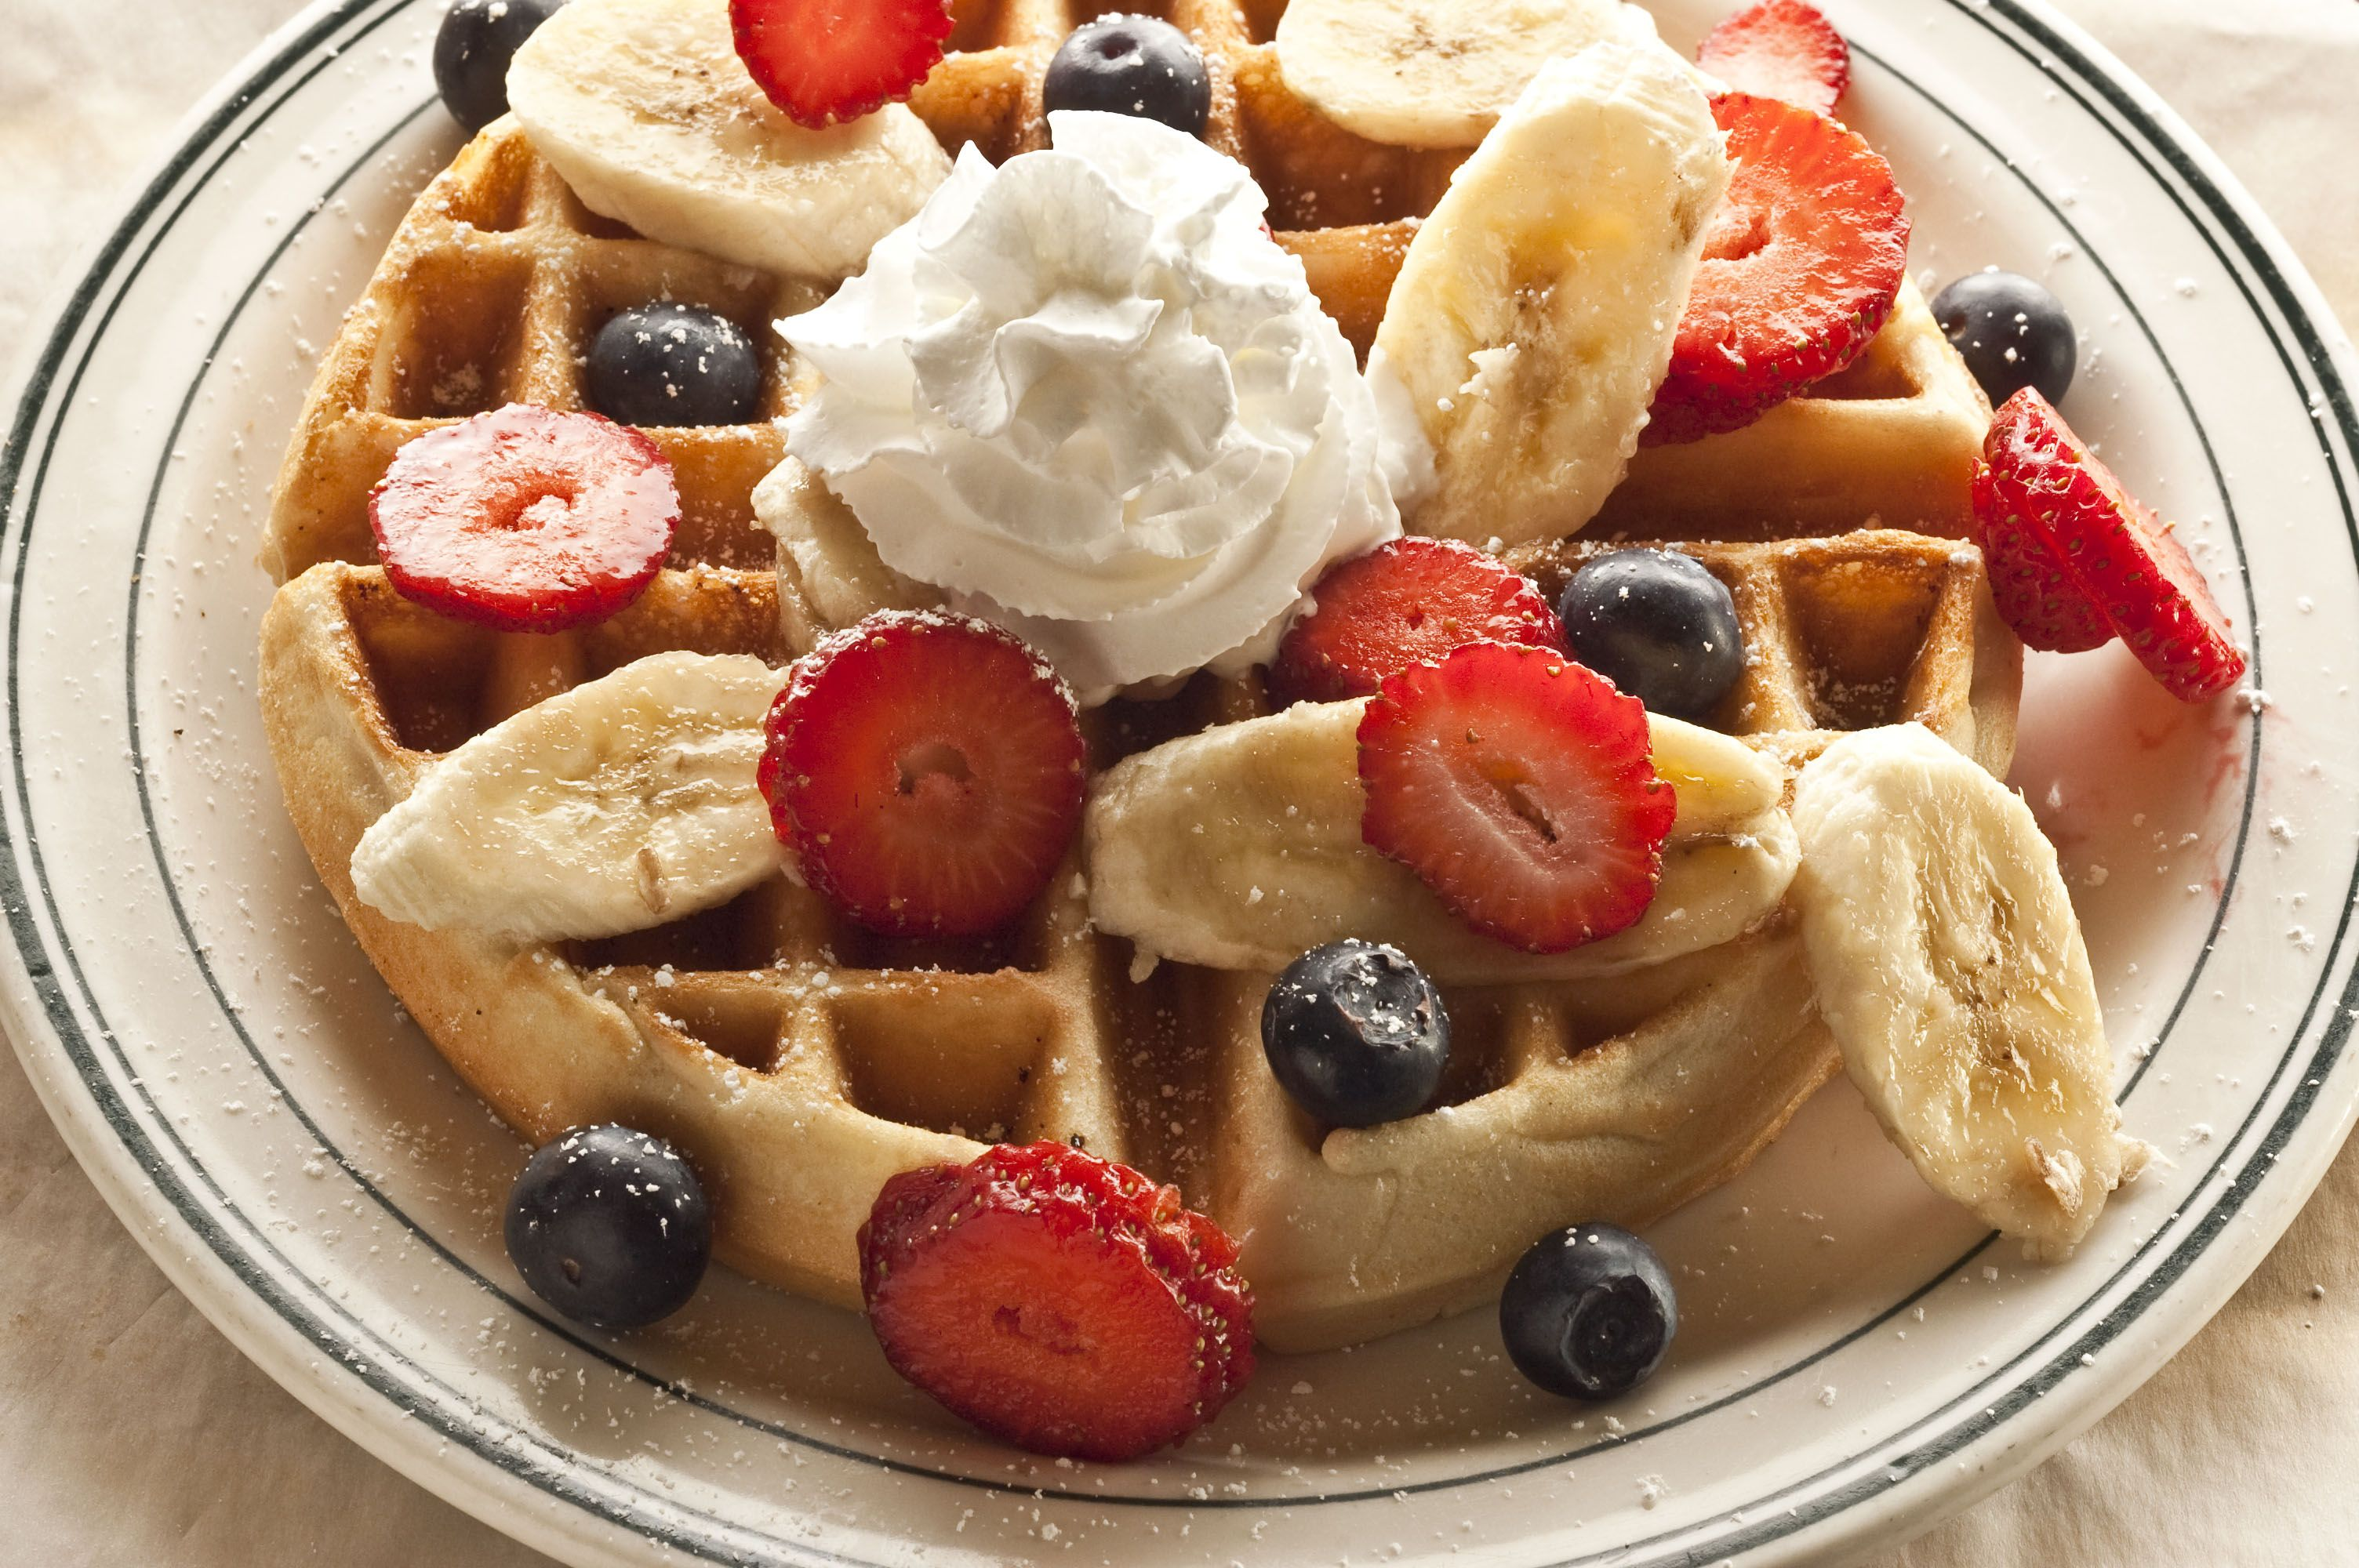 Waffle with fresh fruit and whipped cream